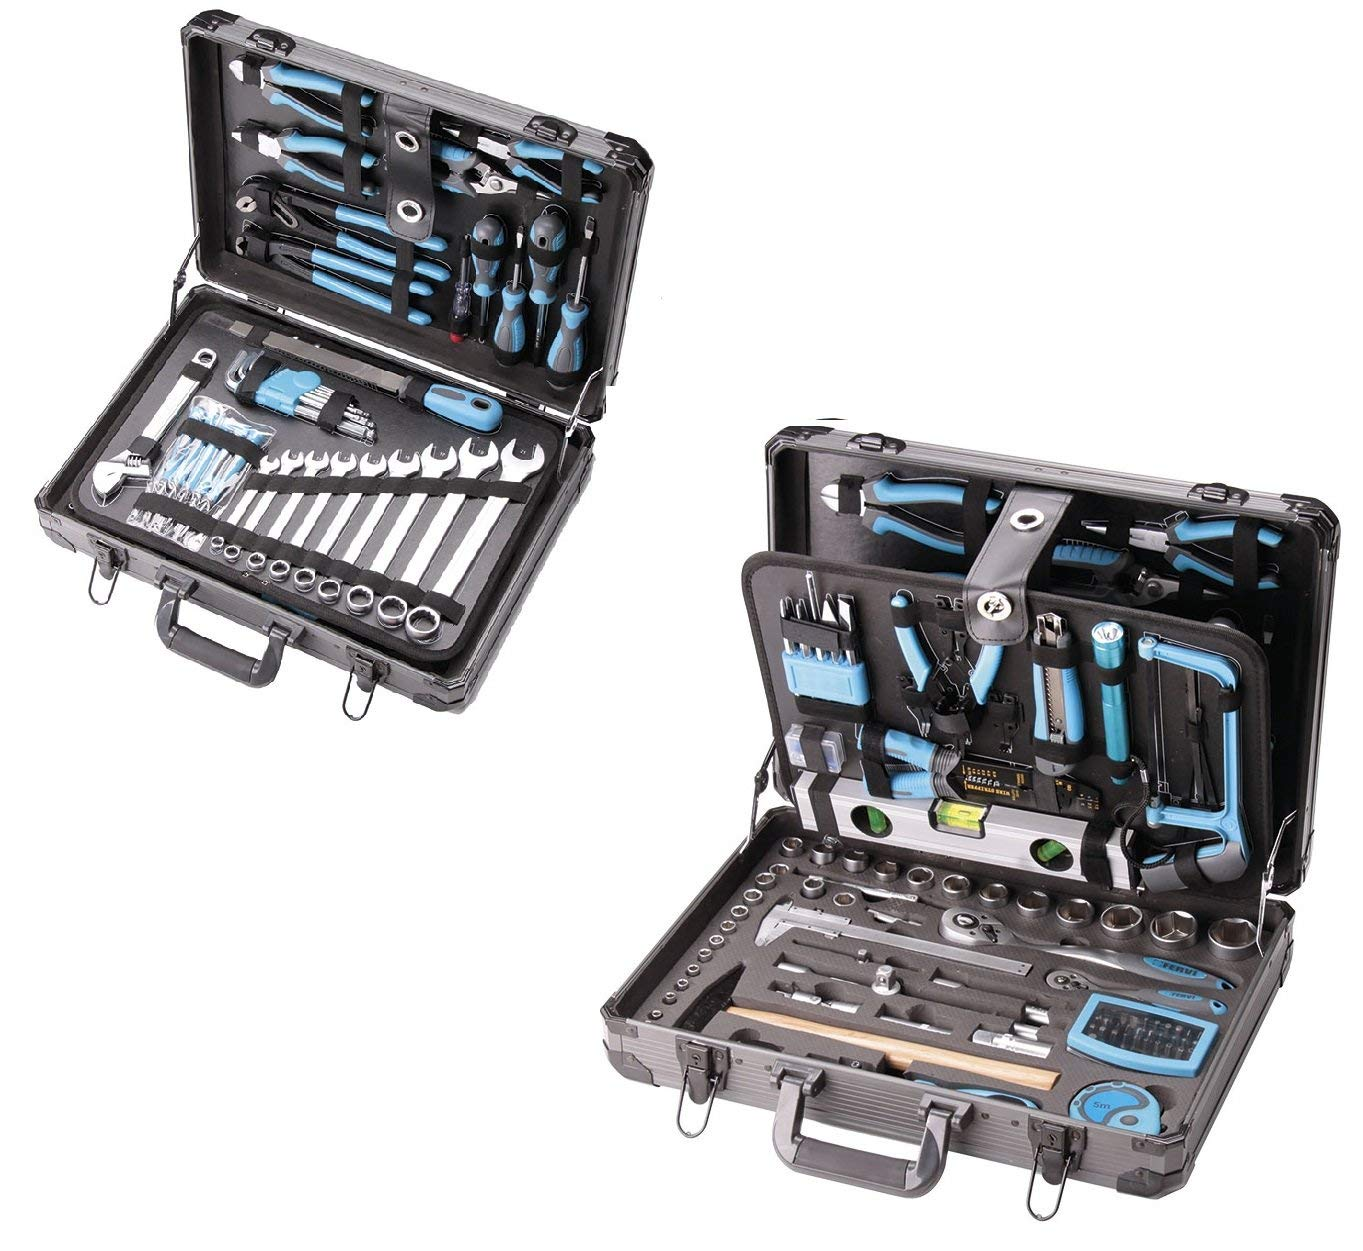 TOOL BOX CASE SET 162 PCS WITH ACCESSORIES TOOLS BAG WORKING FERVI 0105